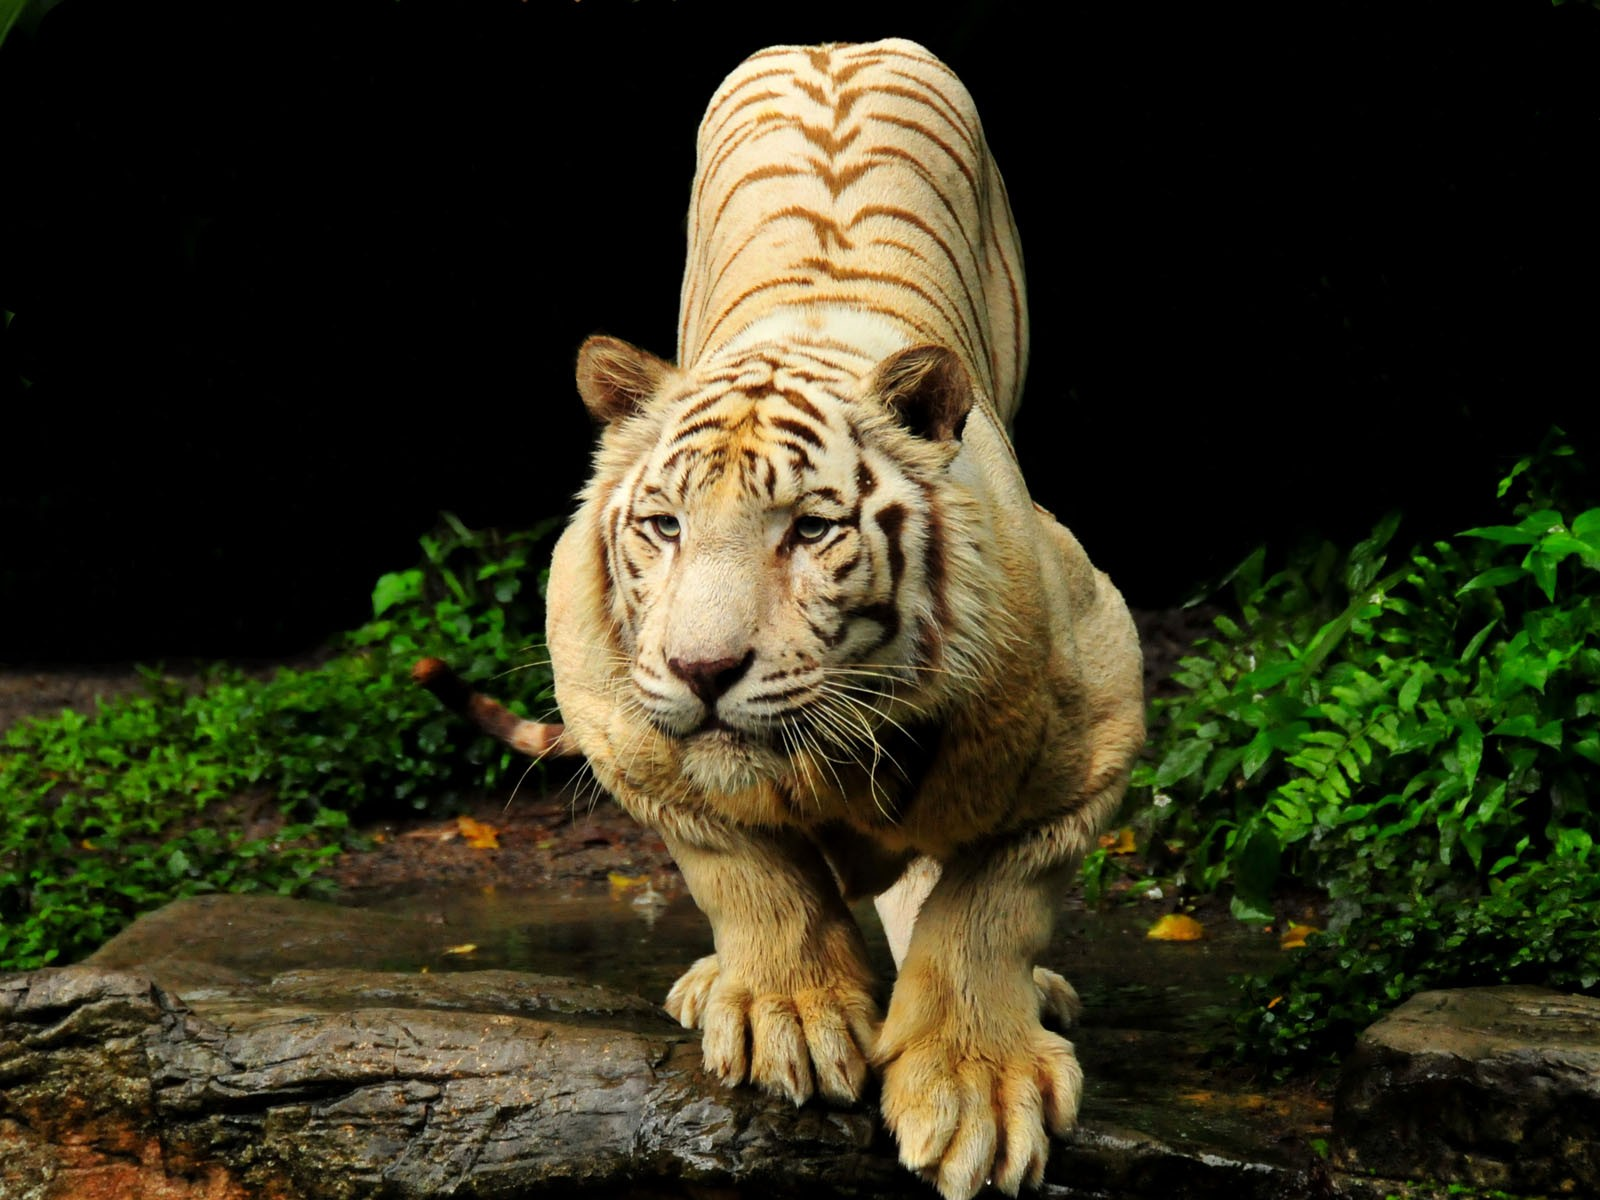 Tiger hd wallpapers hd wallpaper - Tiger hd wallpaper for pc ...